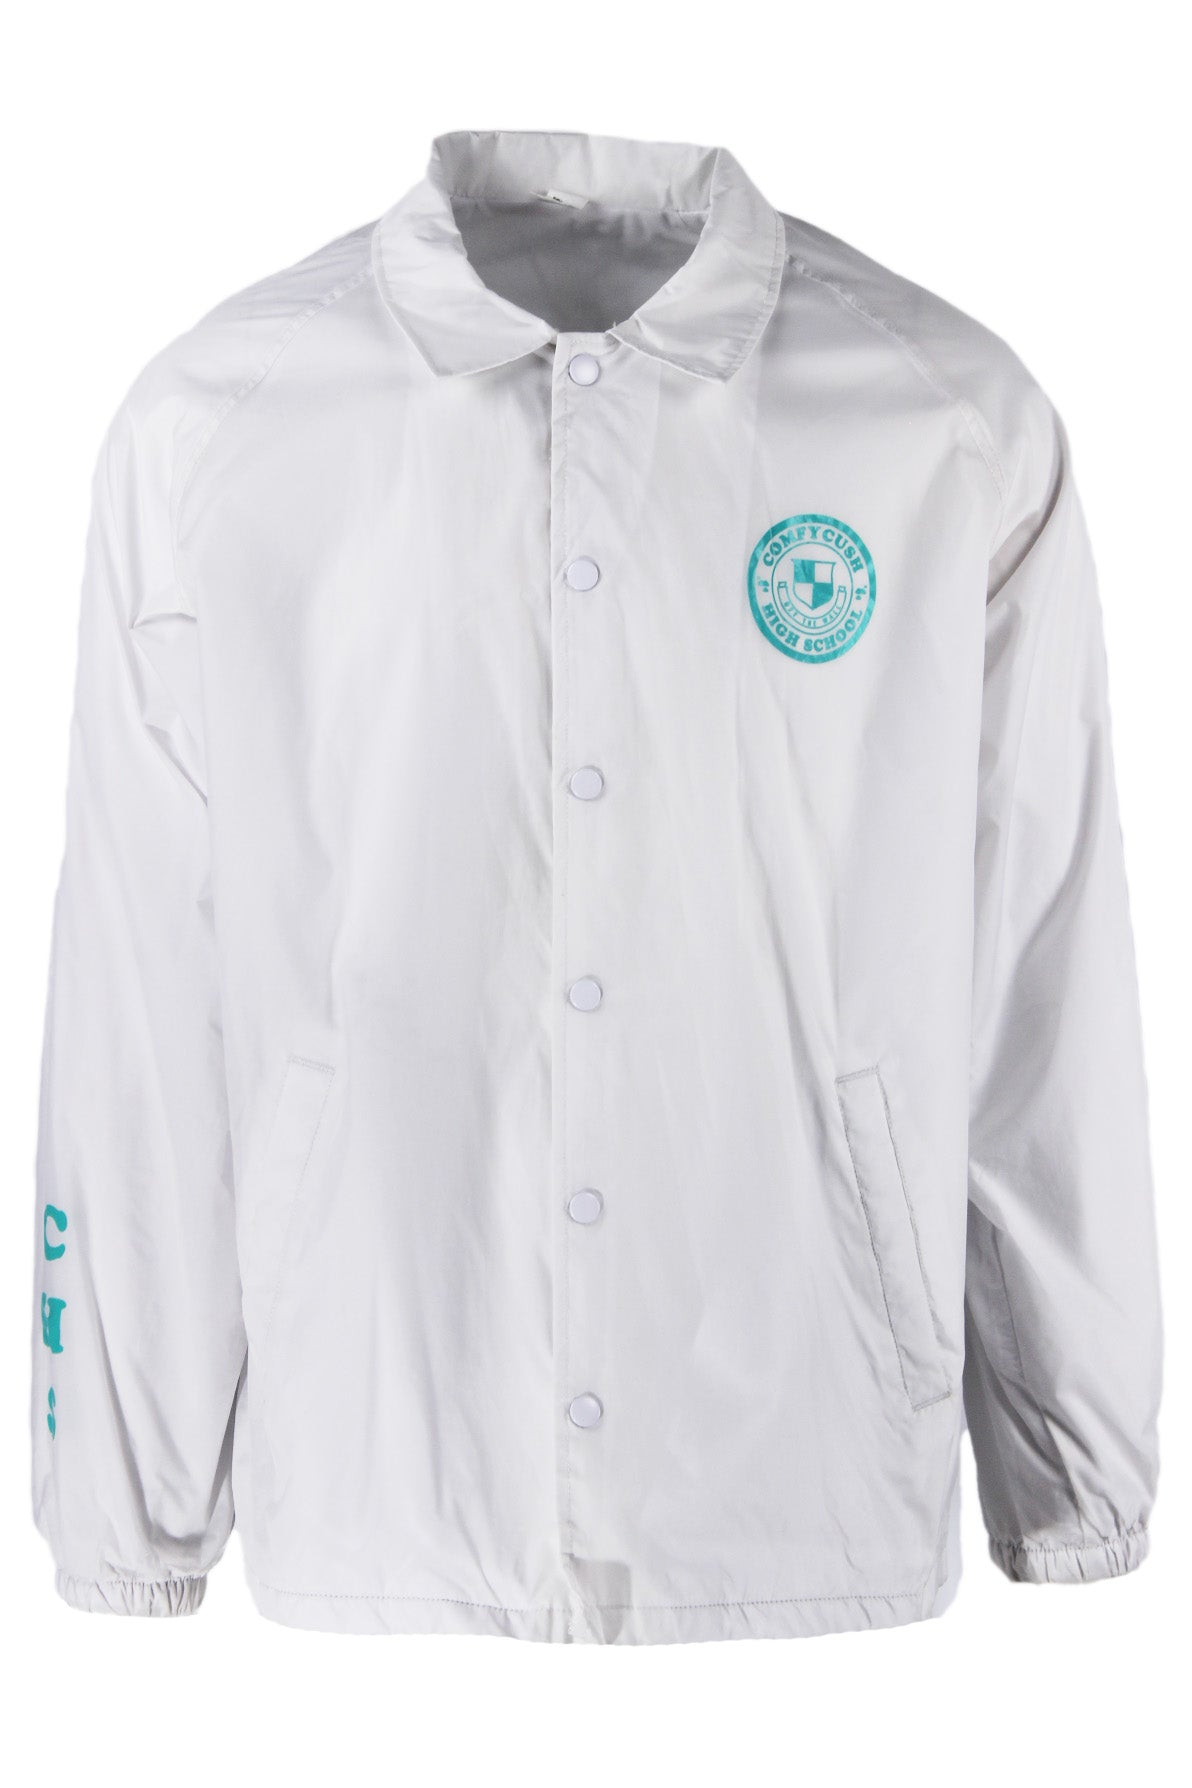 vans white snap up coach jacket. features branding at left breast, right sleeve and back. hand pockets at sides, elastic at cuffs, fully lined.